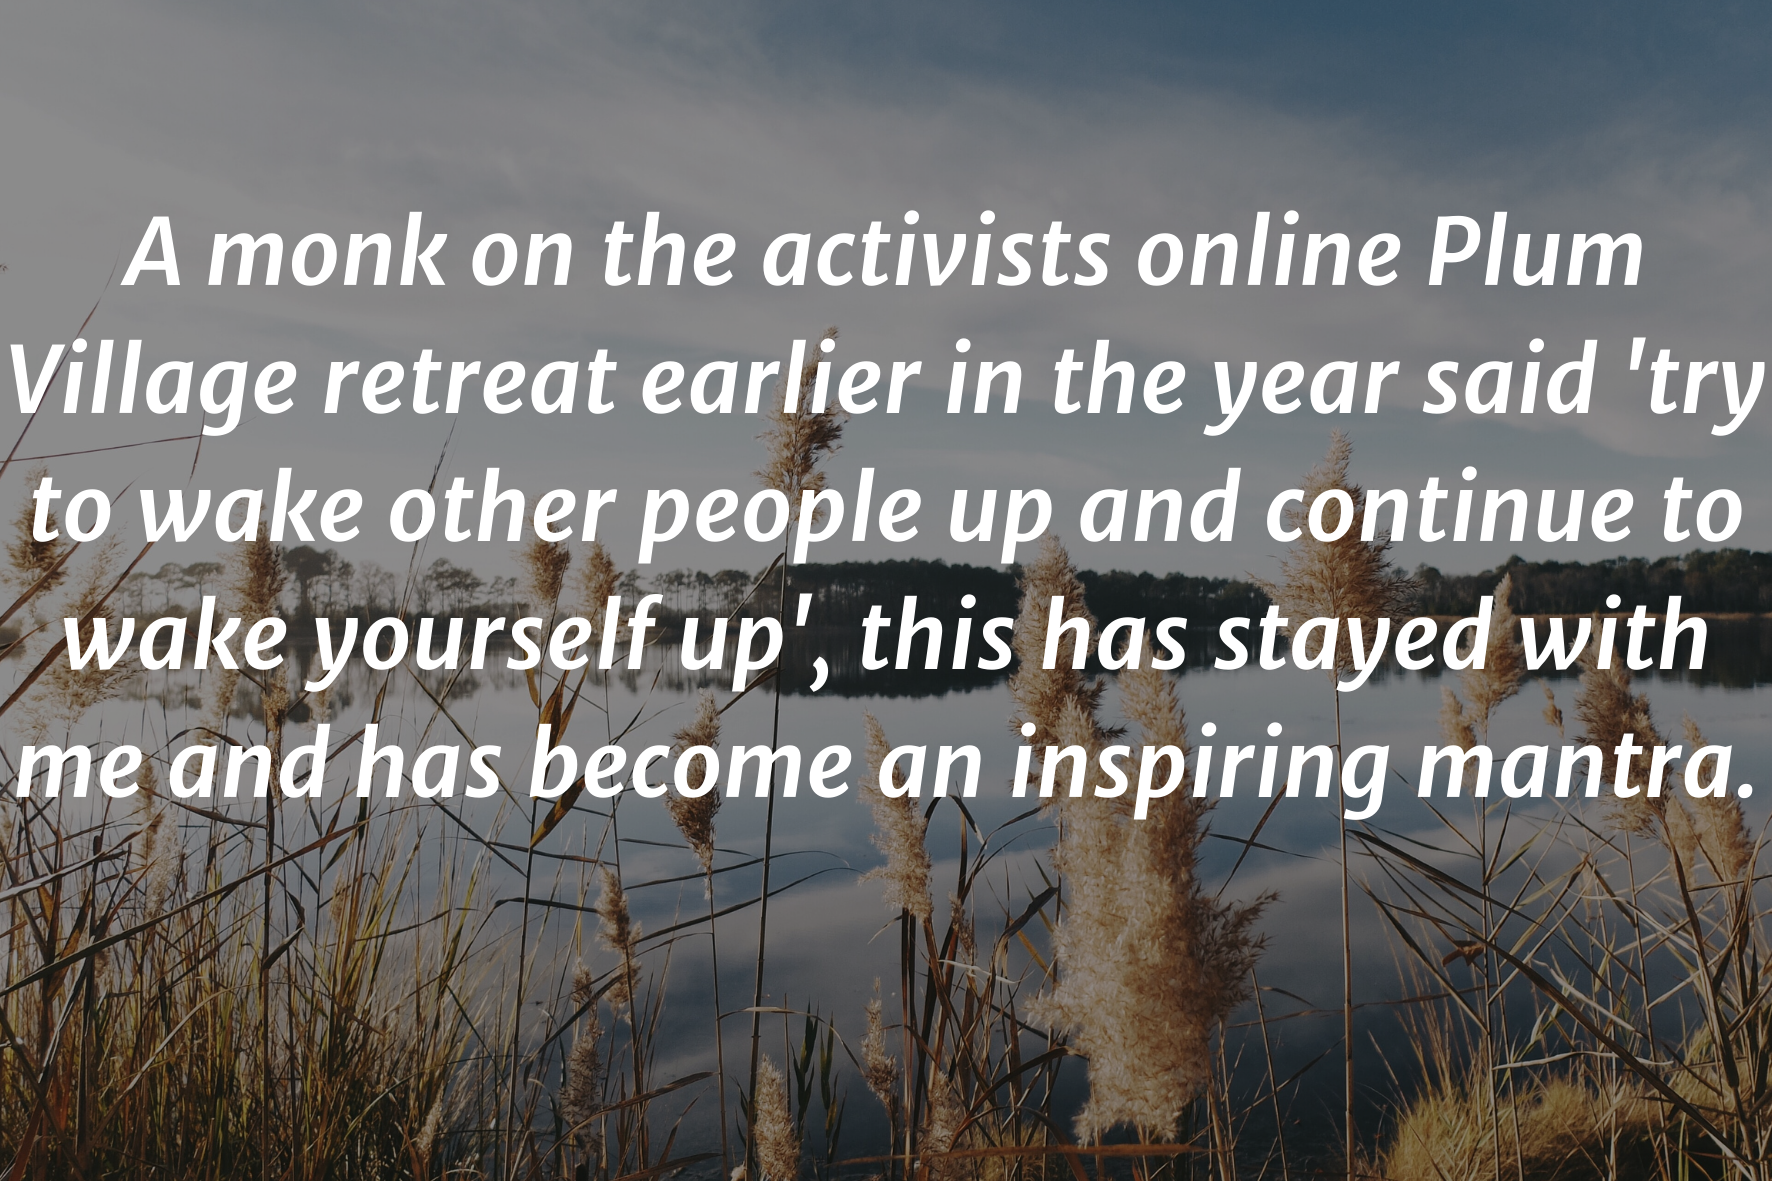 """image of a lake with text saying: """"A monk on the activists online Plum Village retreat earlier in the year said 'try to wake other people up and continue to wake yourself up', this has stayed with me and has become an inspiring mantra"""""""